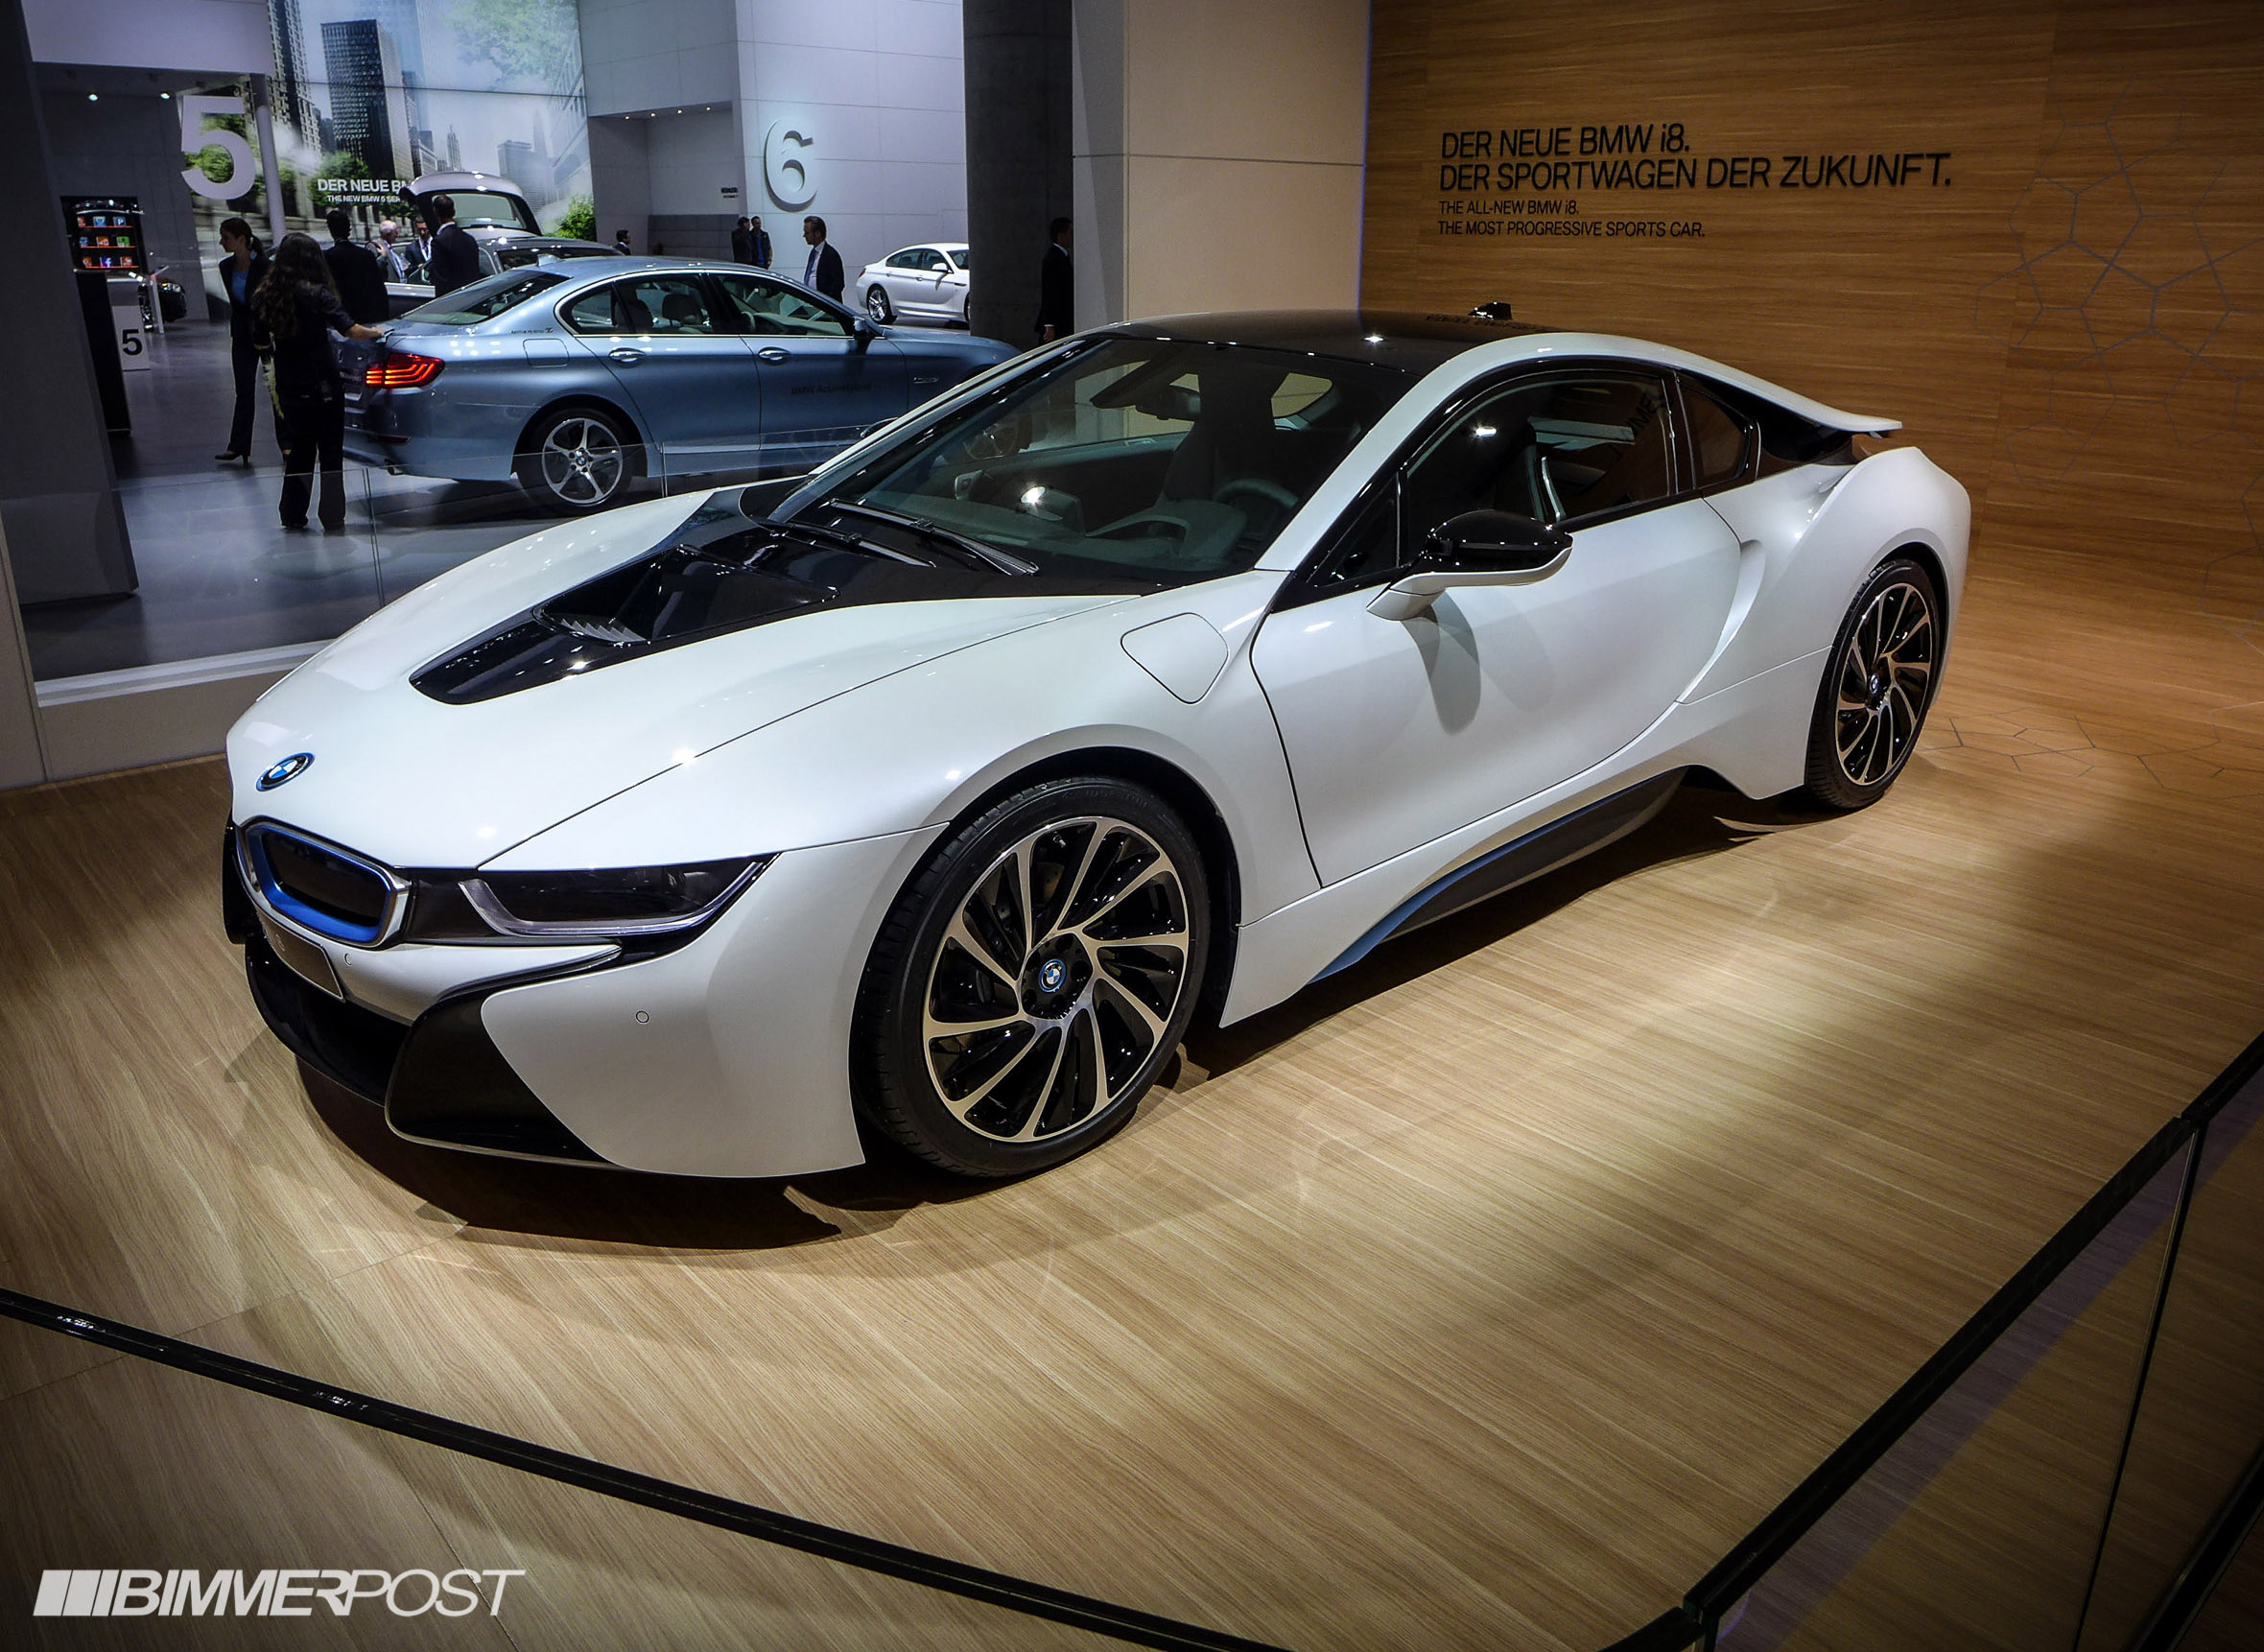 Frankfurt iaa 2013 bmw i8 in crystal white sophisto grey ionic silver page 2